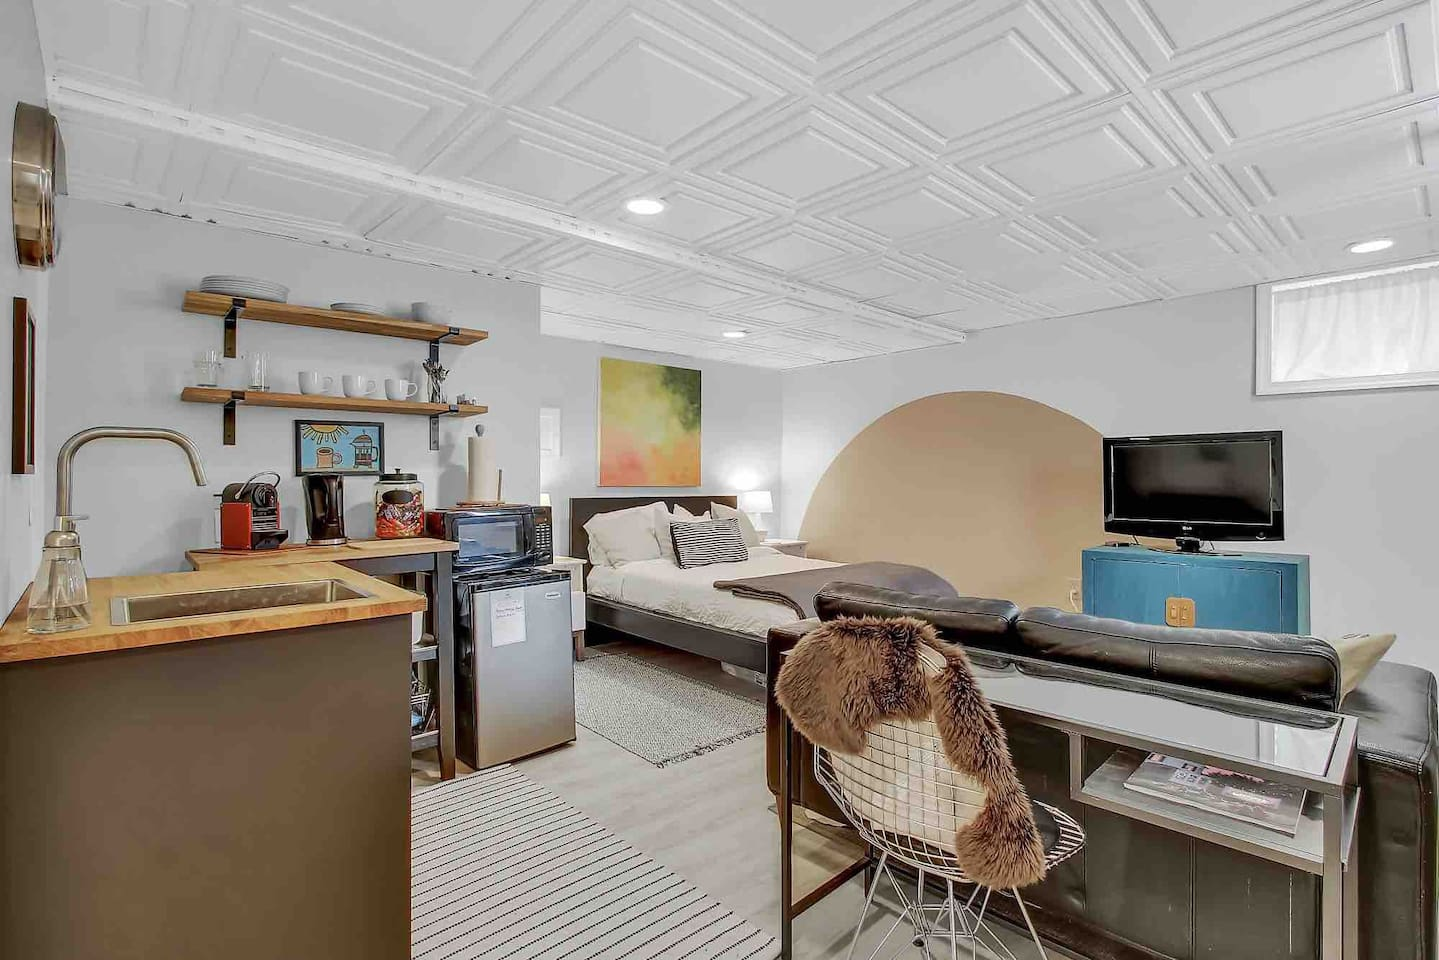 A clean, modern, stylish studio in the heart of DC. The art work is my own  and occasionally changes.